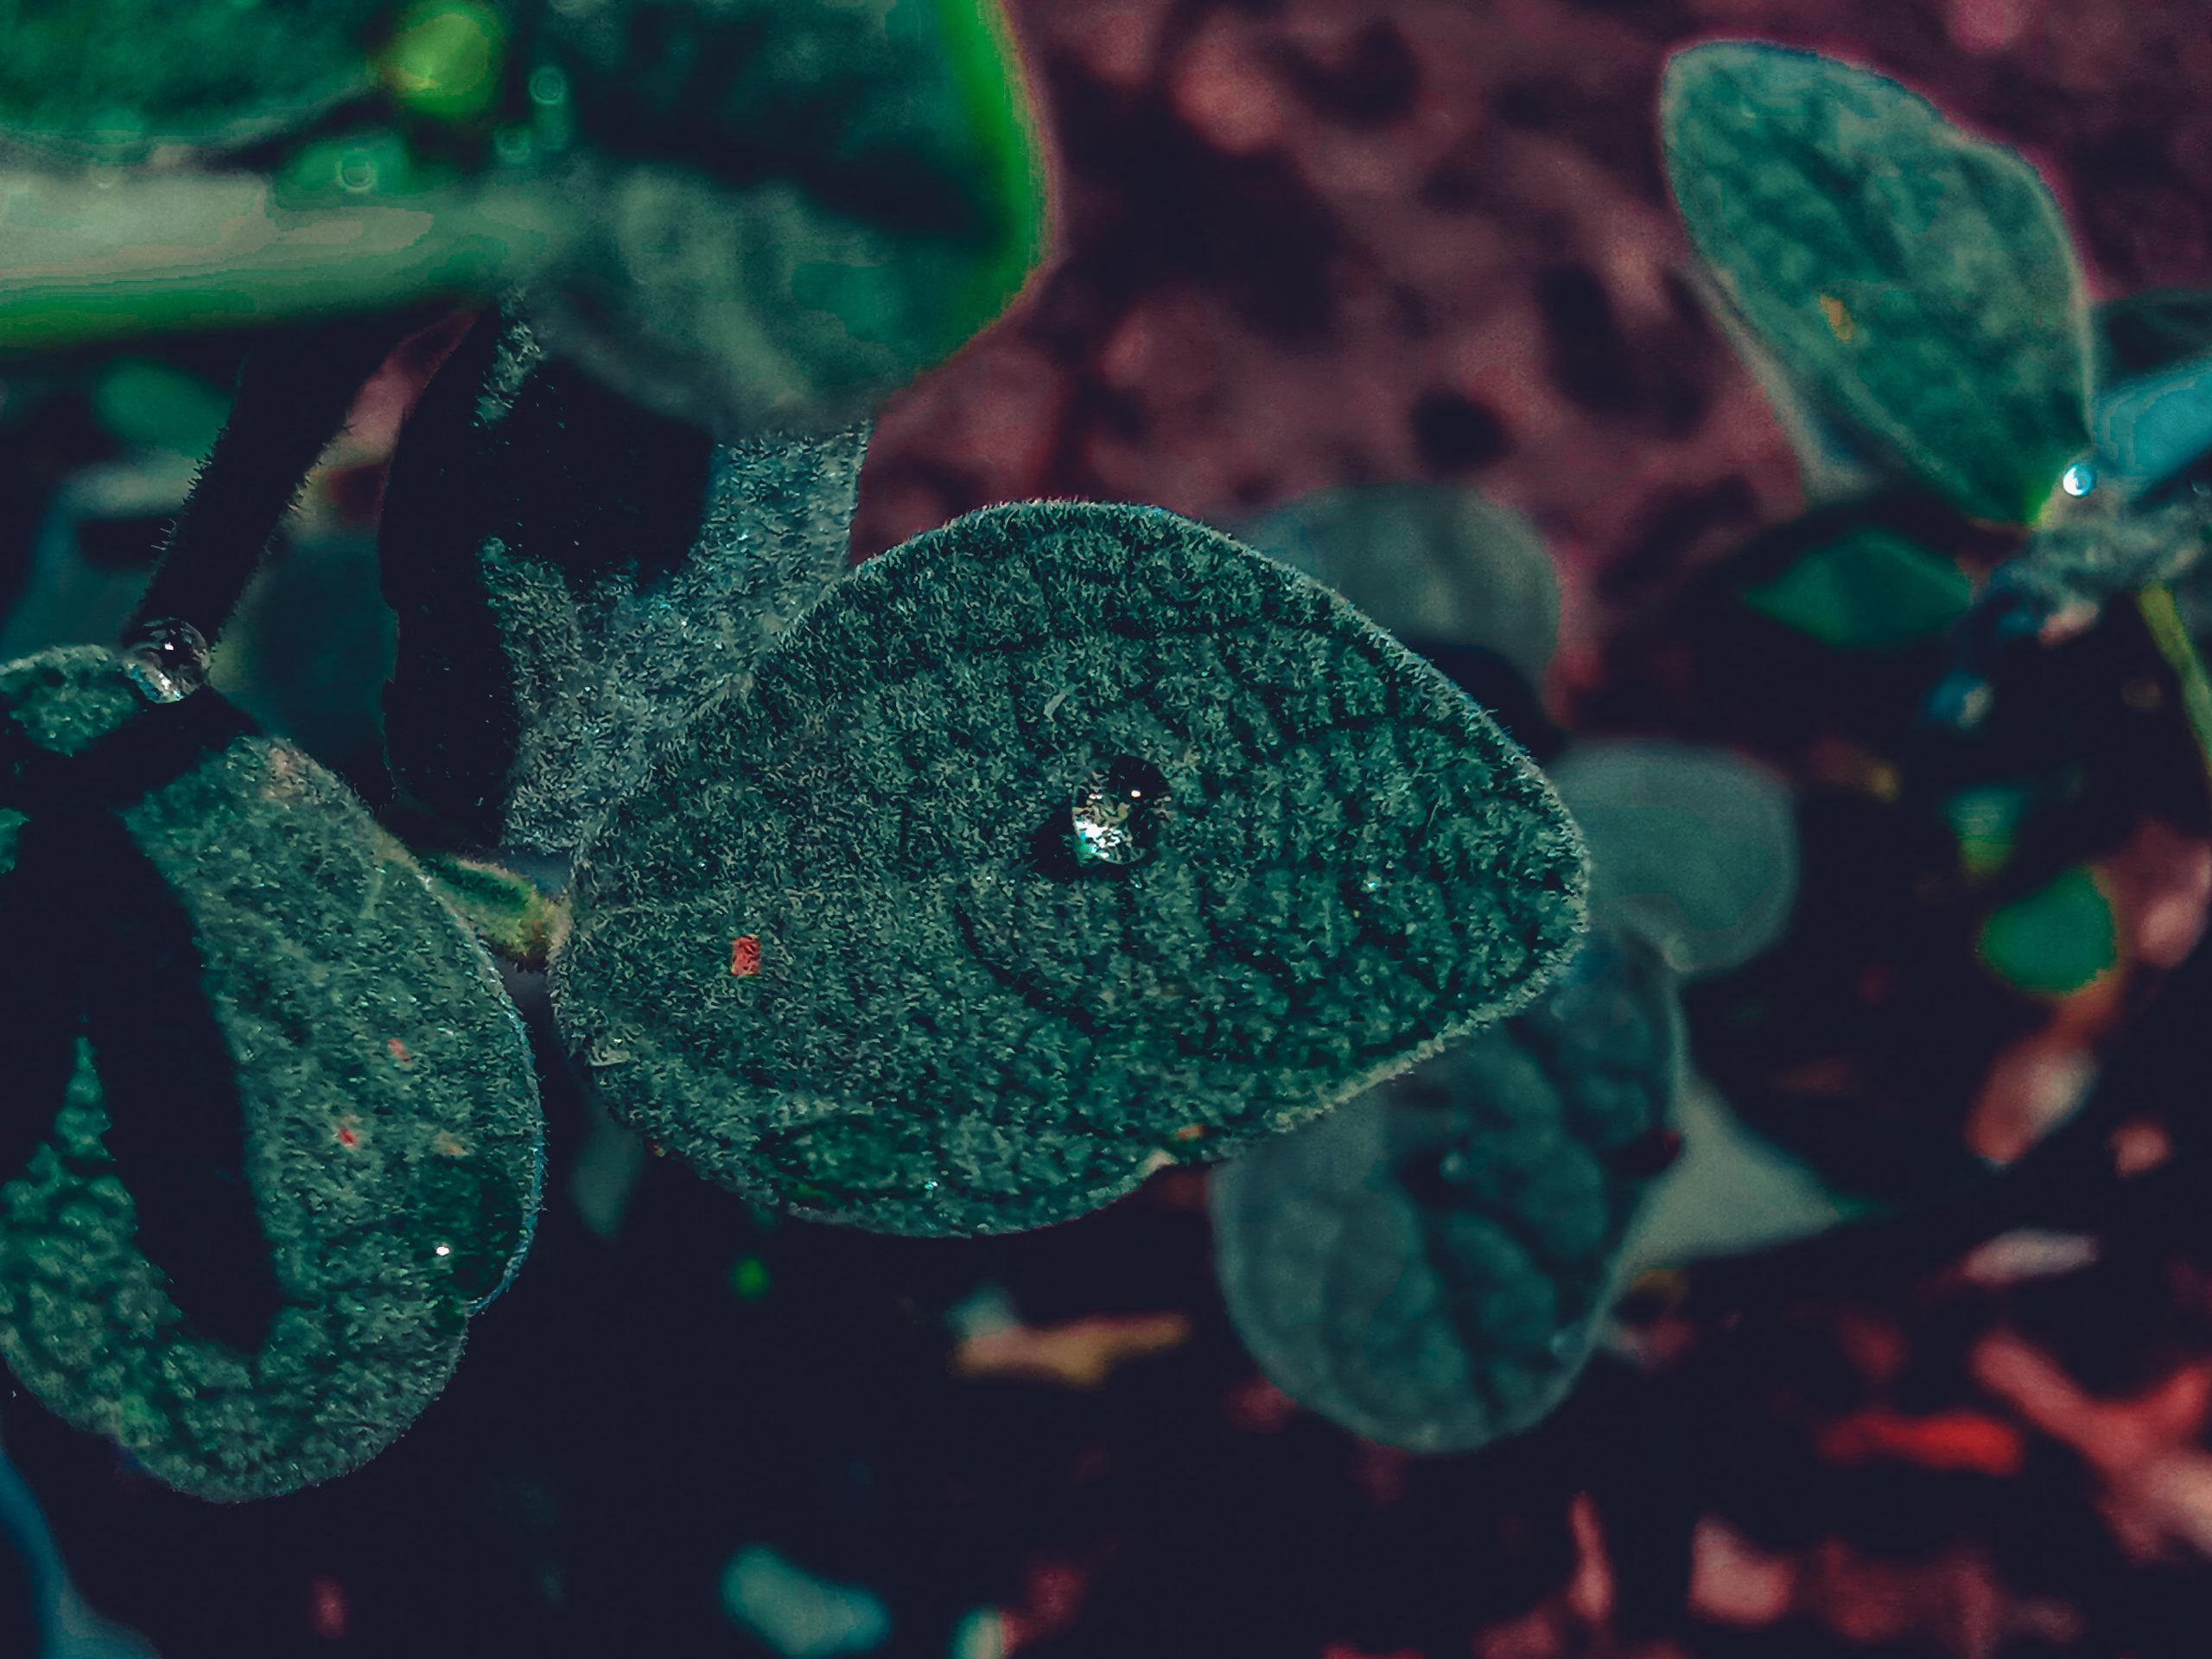 Water drops on a plant leaves